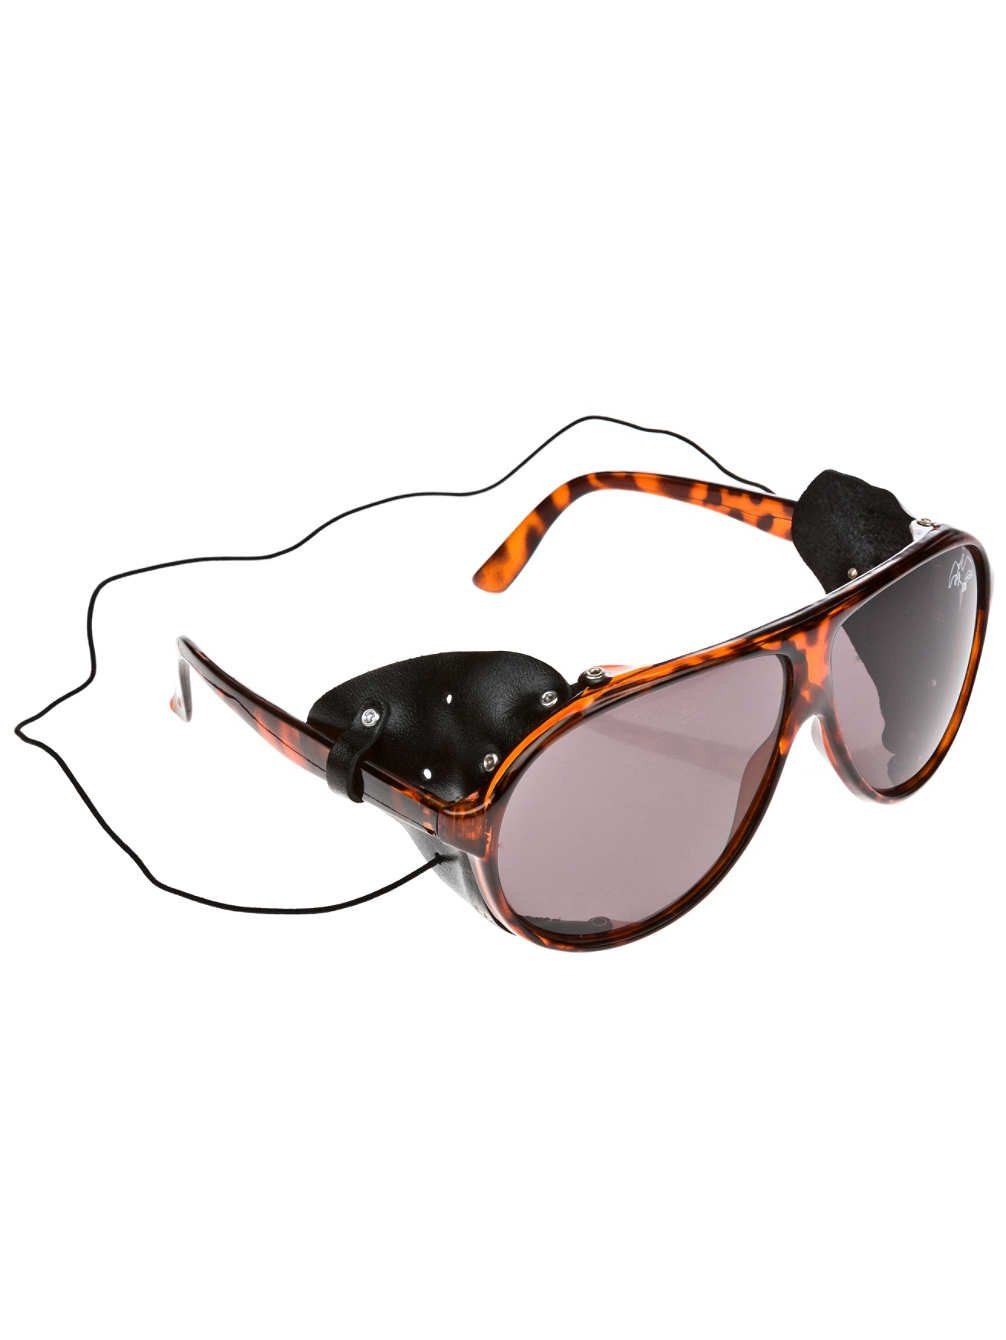 23466e2d00b Airblaster Glacier Sunglasses - brown tortoise  Amazon.ca  Shoes   Handbags